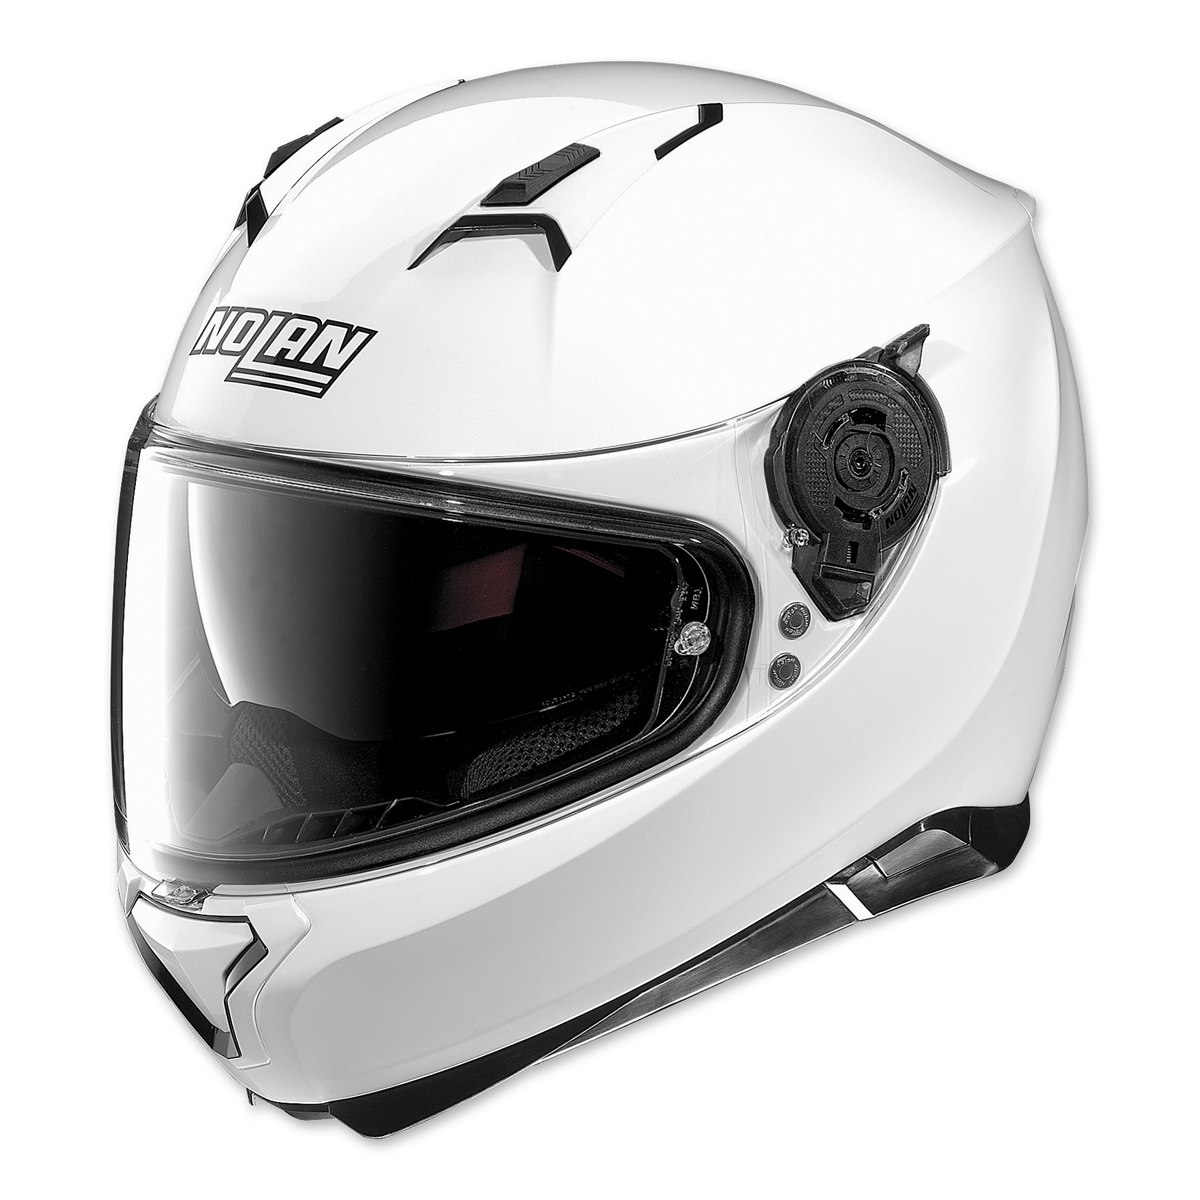 dc04d1a09c6 Nolan N87 Metallic White Full Face Helmet - N875270330052